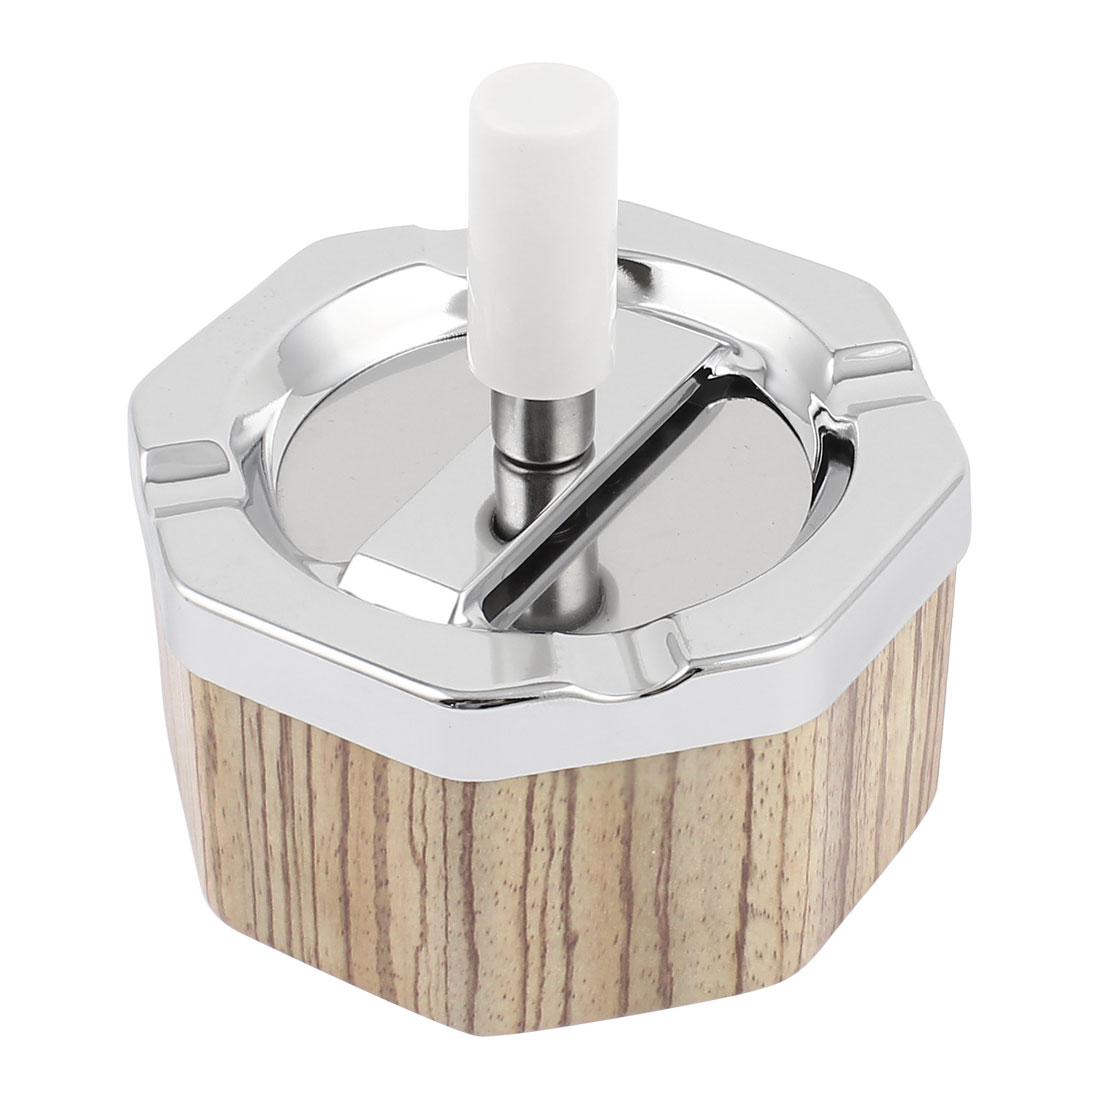 Office Metal Desktop Decor Smoking Cigarette Holder Container Ashtray Wood Color